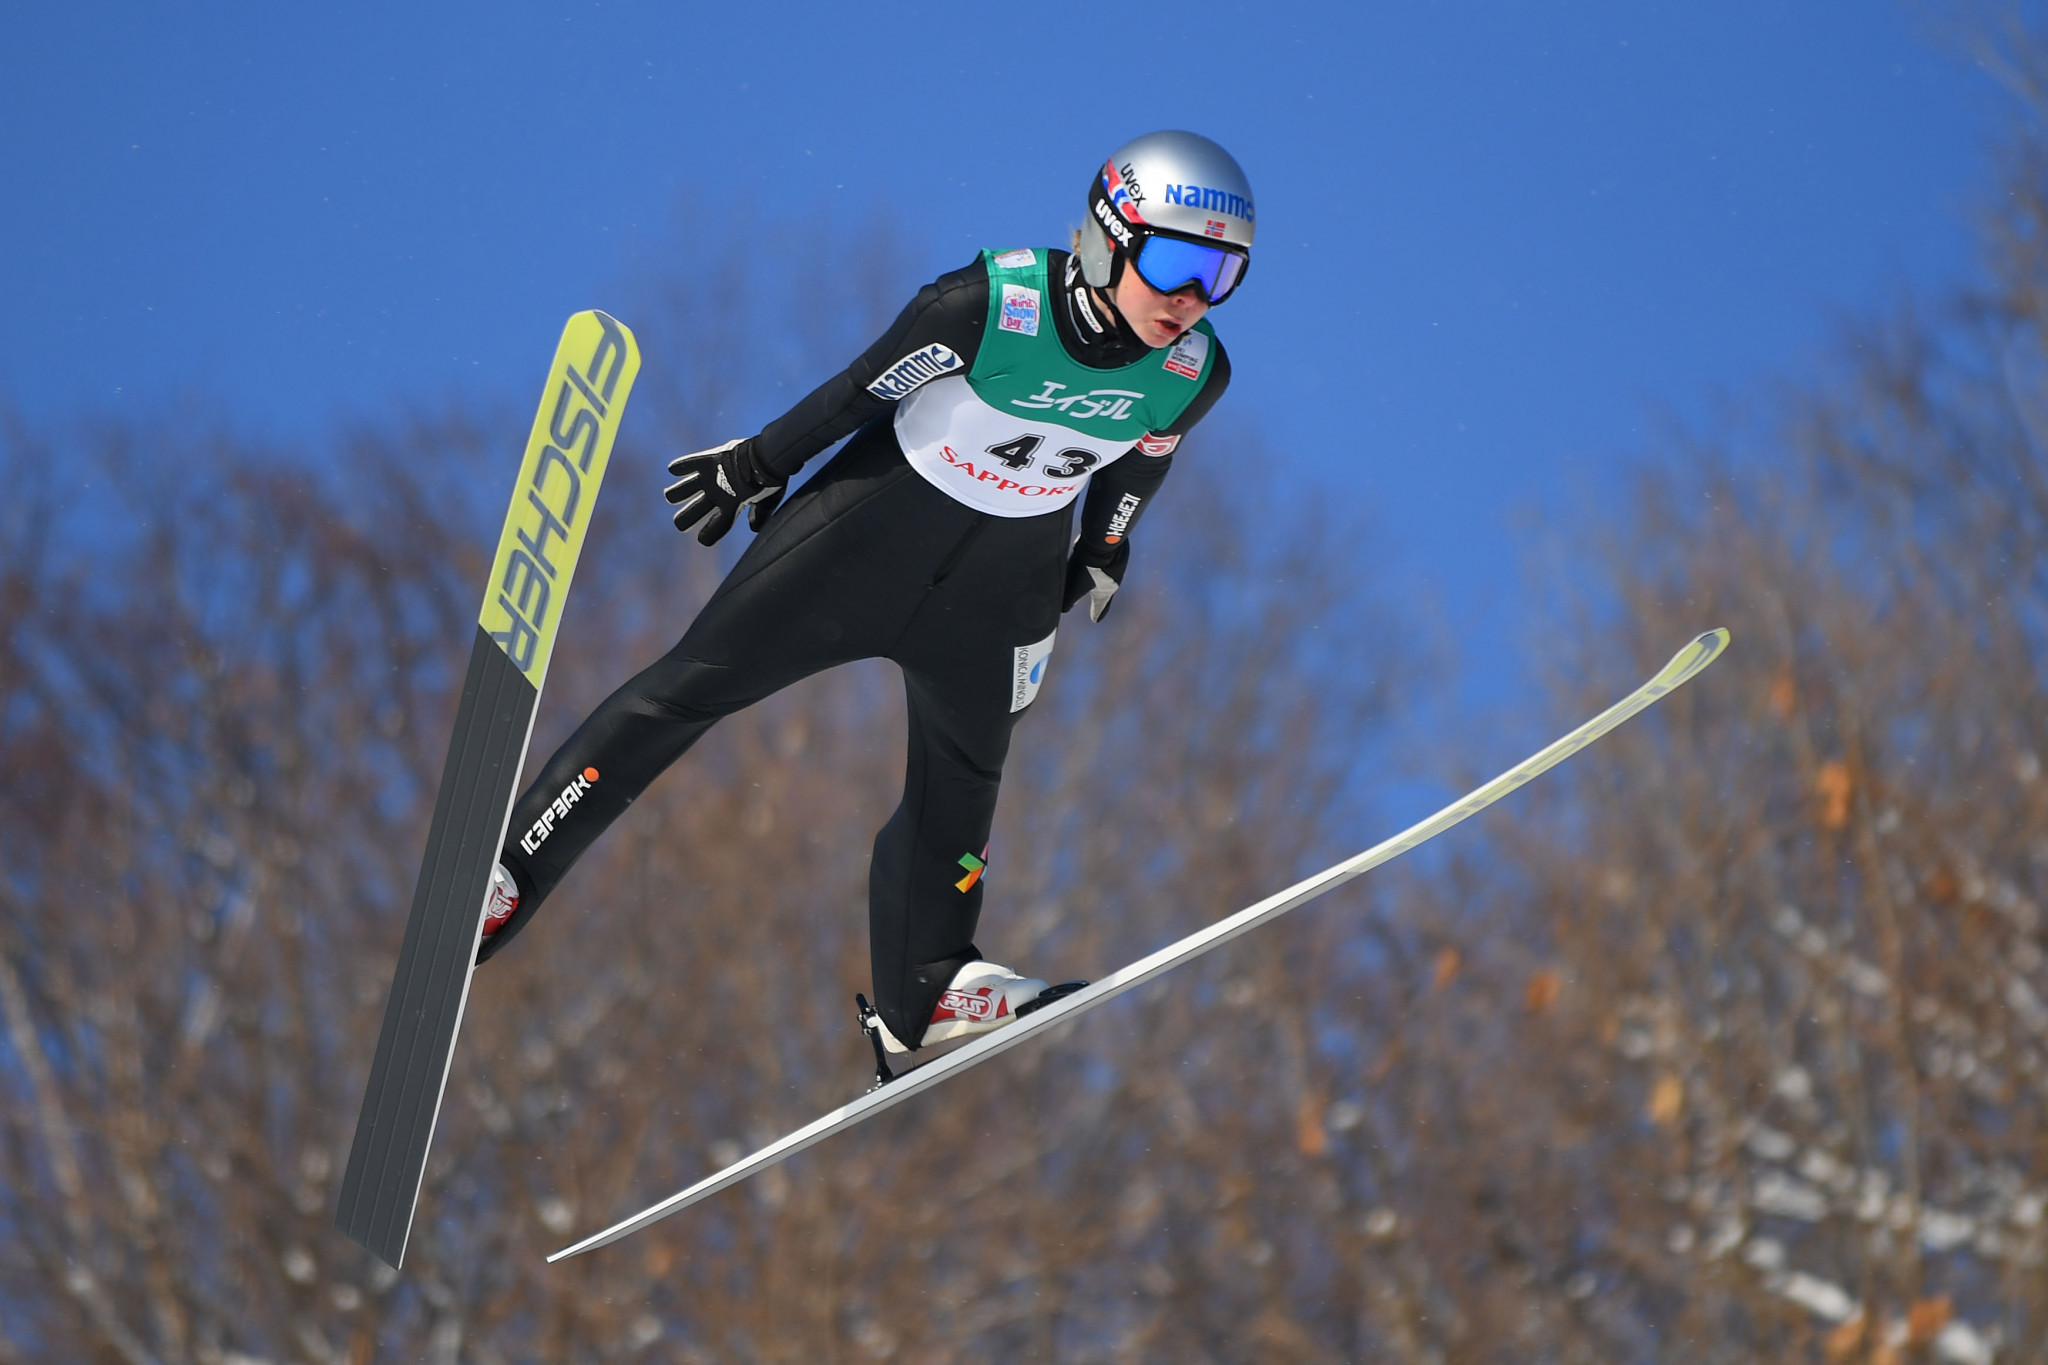 Olympic champion Maren Lundby of Norway won the women's FIS Ski Jumping World Cup event in Sapporo ©Getty Images